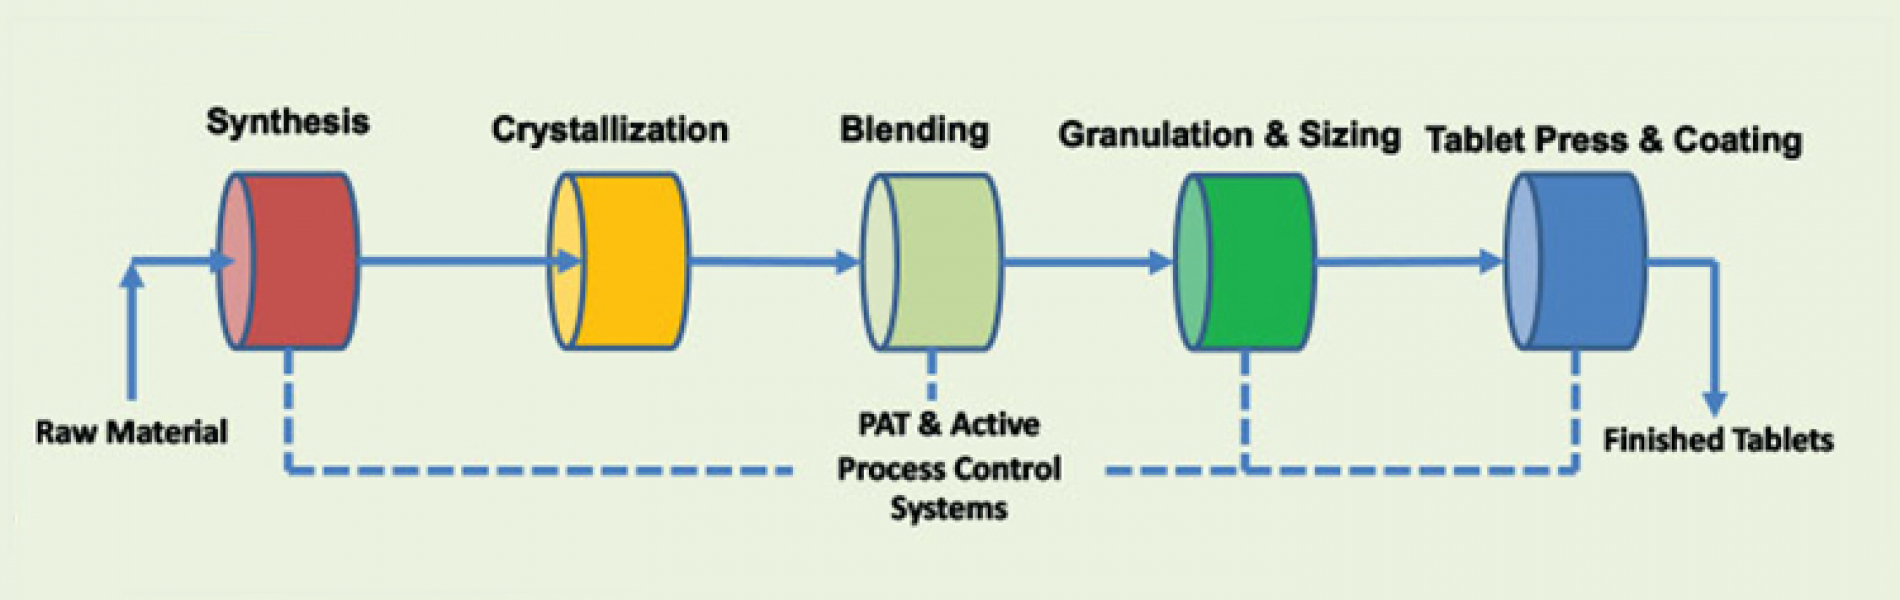 Quality & Regulatory Solutions for PAT in Continuous Manufacturing